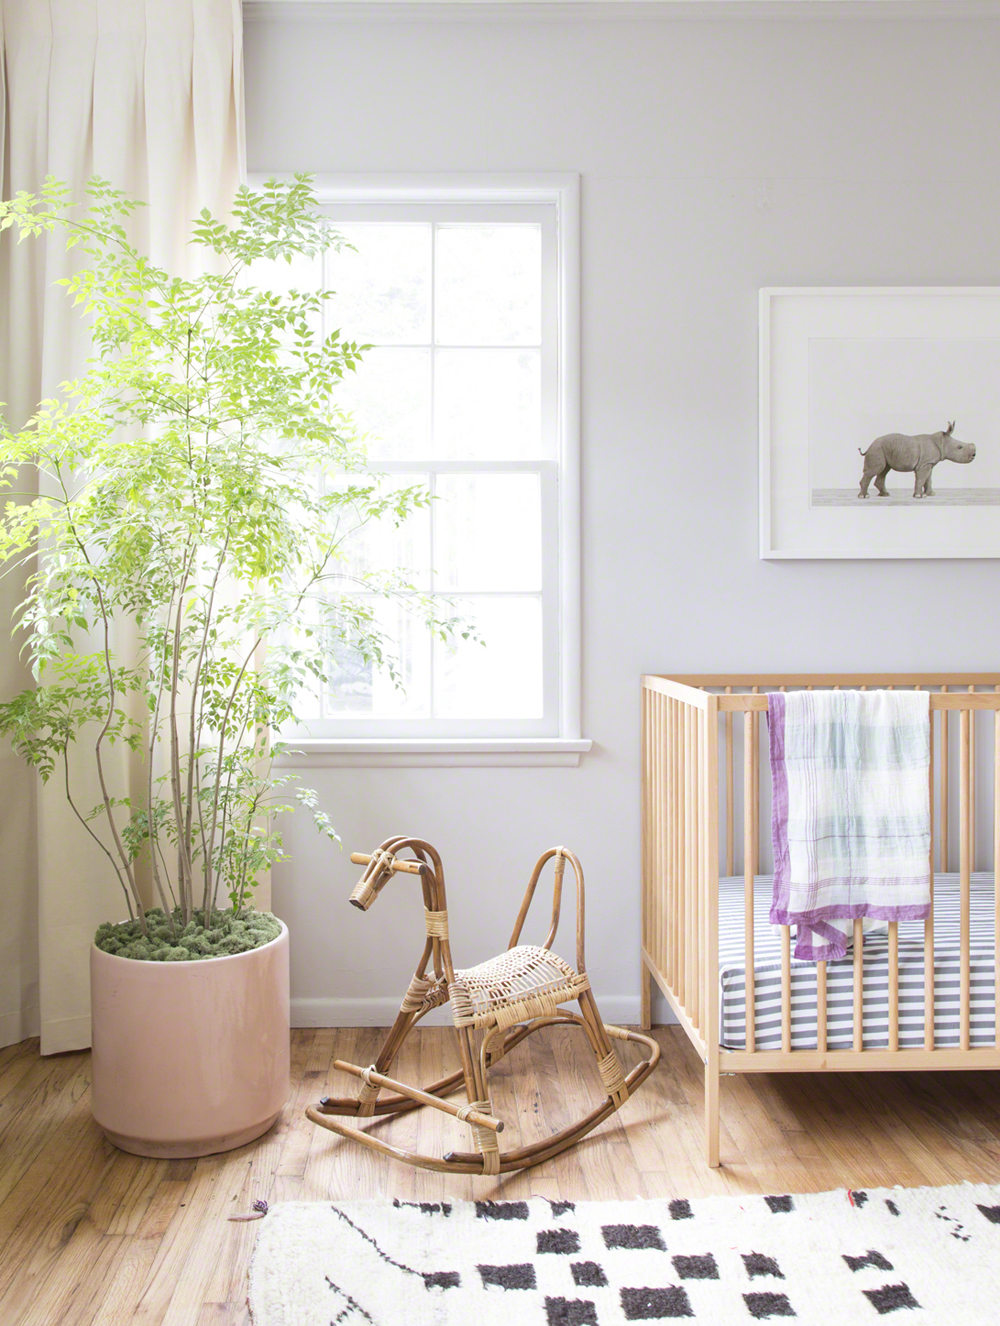 baby-rhino-nursery-decor-ikea-crib-www.theanimalprintshop.com-02